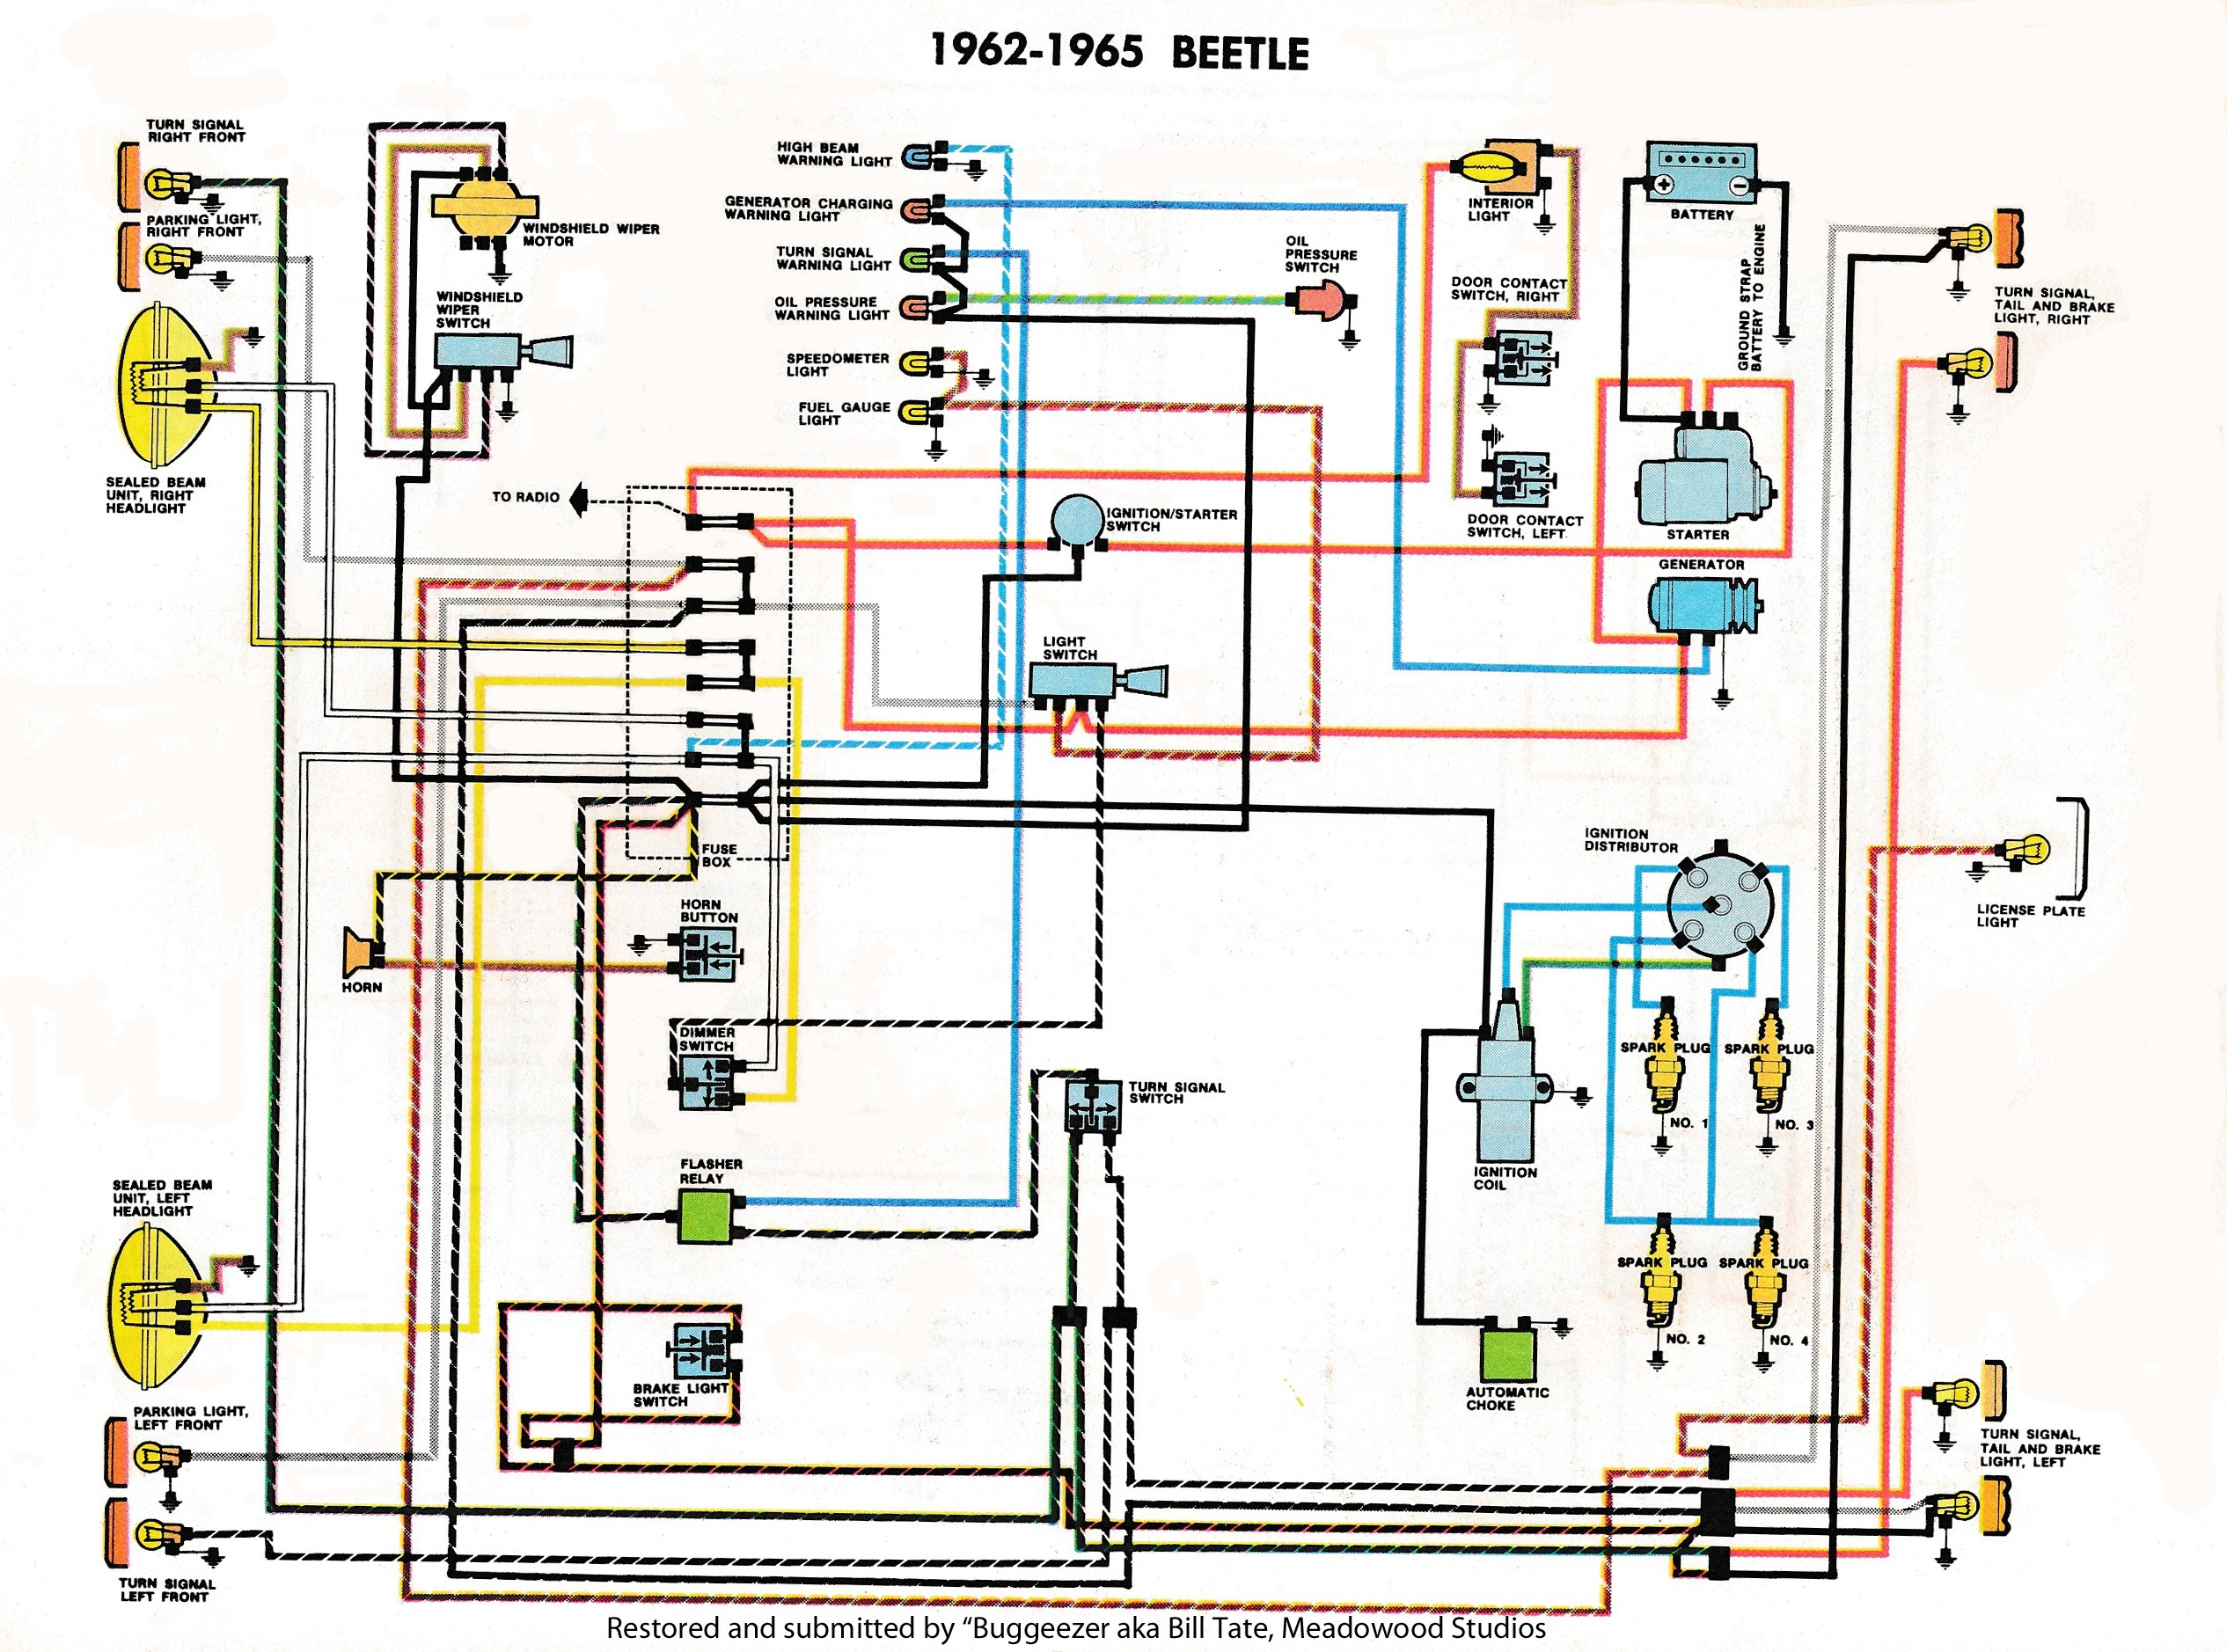 1973 vw beetle wiring diagram likewise vw beetle wiring diagram VW Beetle Generator Wiring Diagram wiring diagram likewise 1972 vw beetle wiring diagram on 1967 vw bug 1967 vw beetle wiring